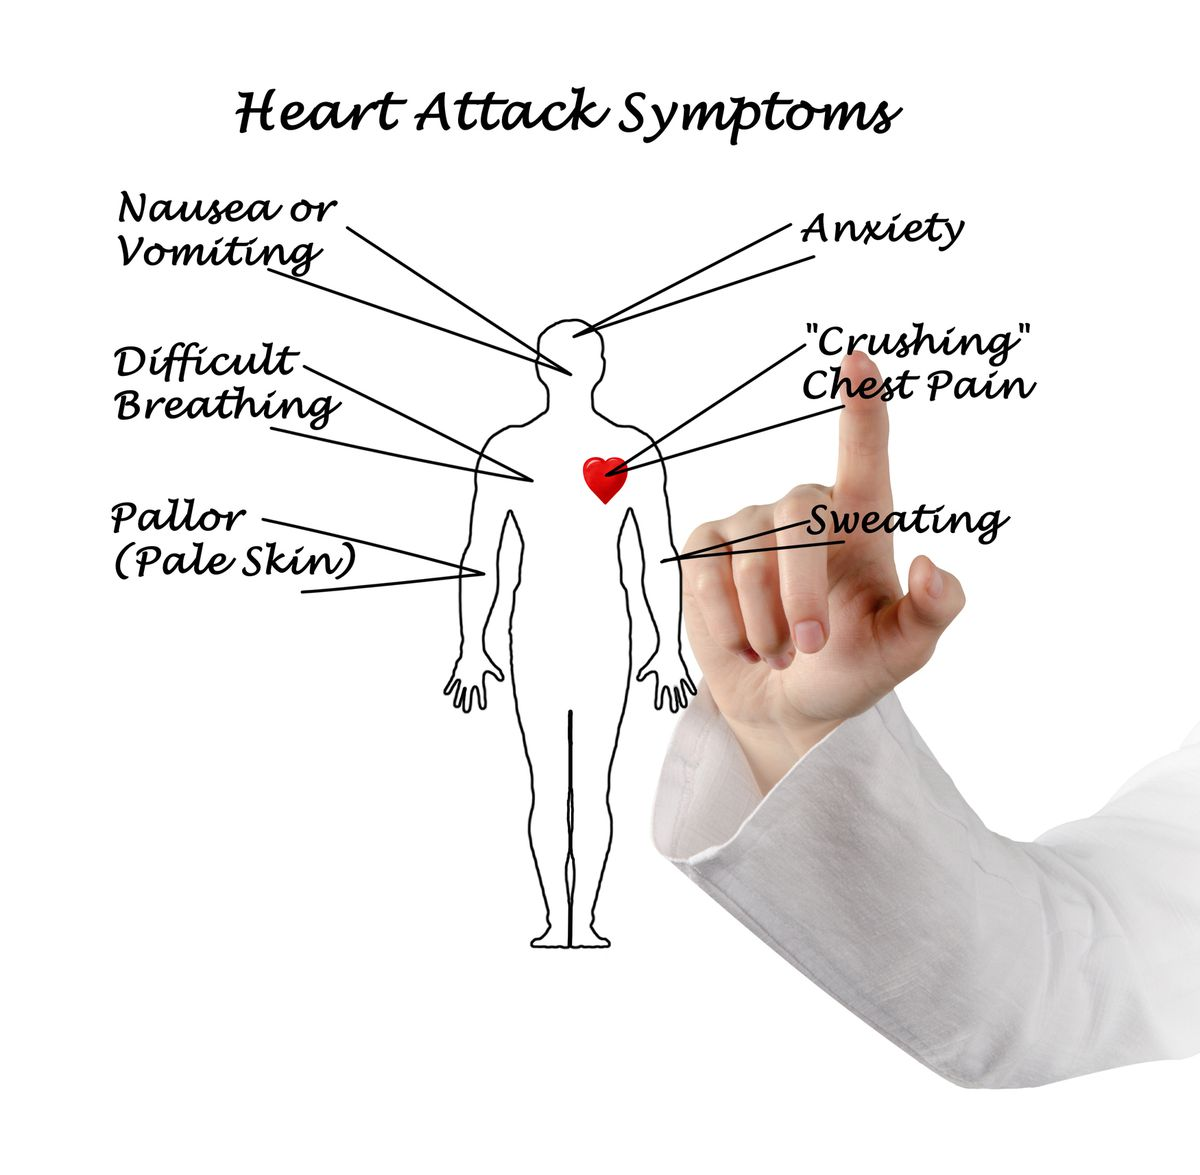 Some common heart attack symptoms women should be aware of. | THINKSTOCKIMAGES.COM